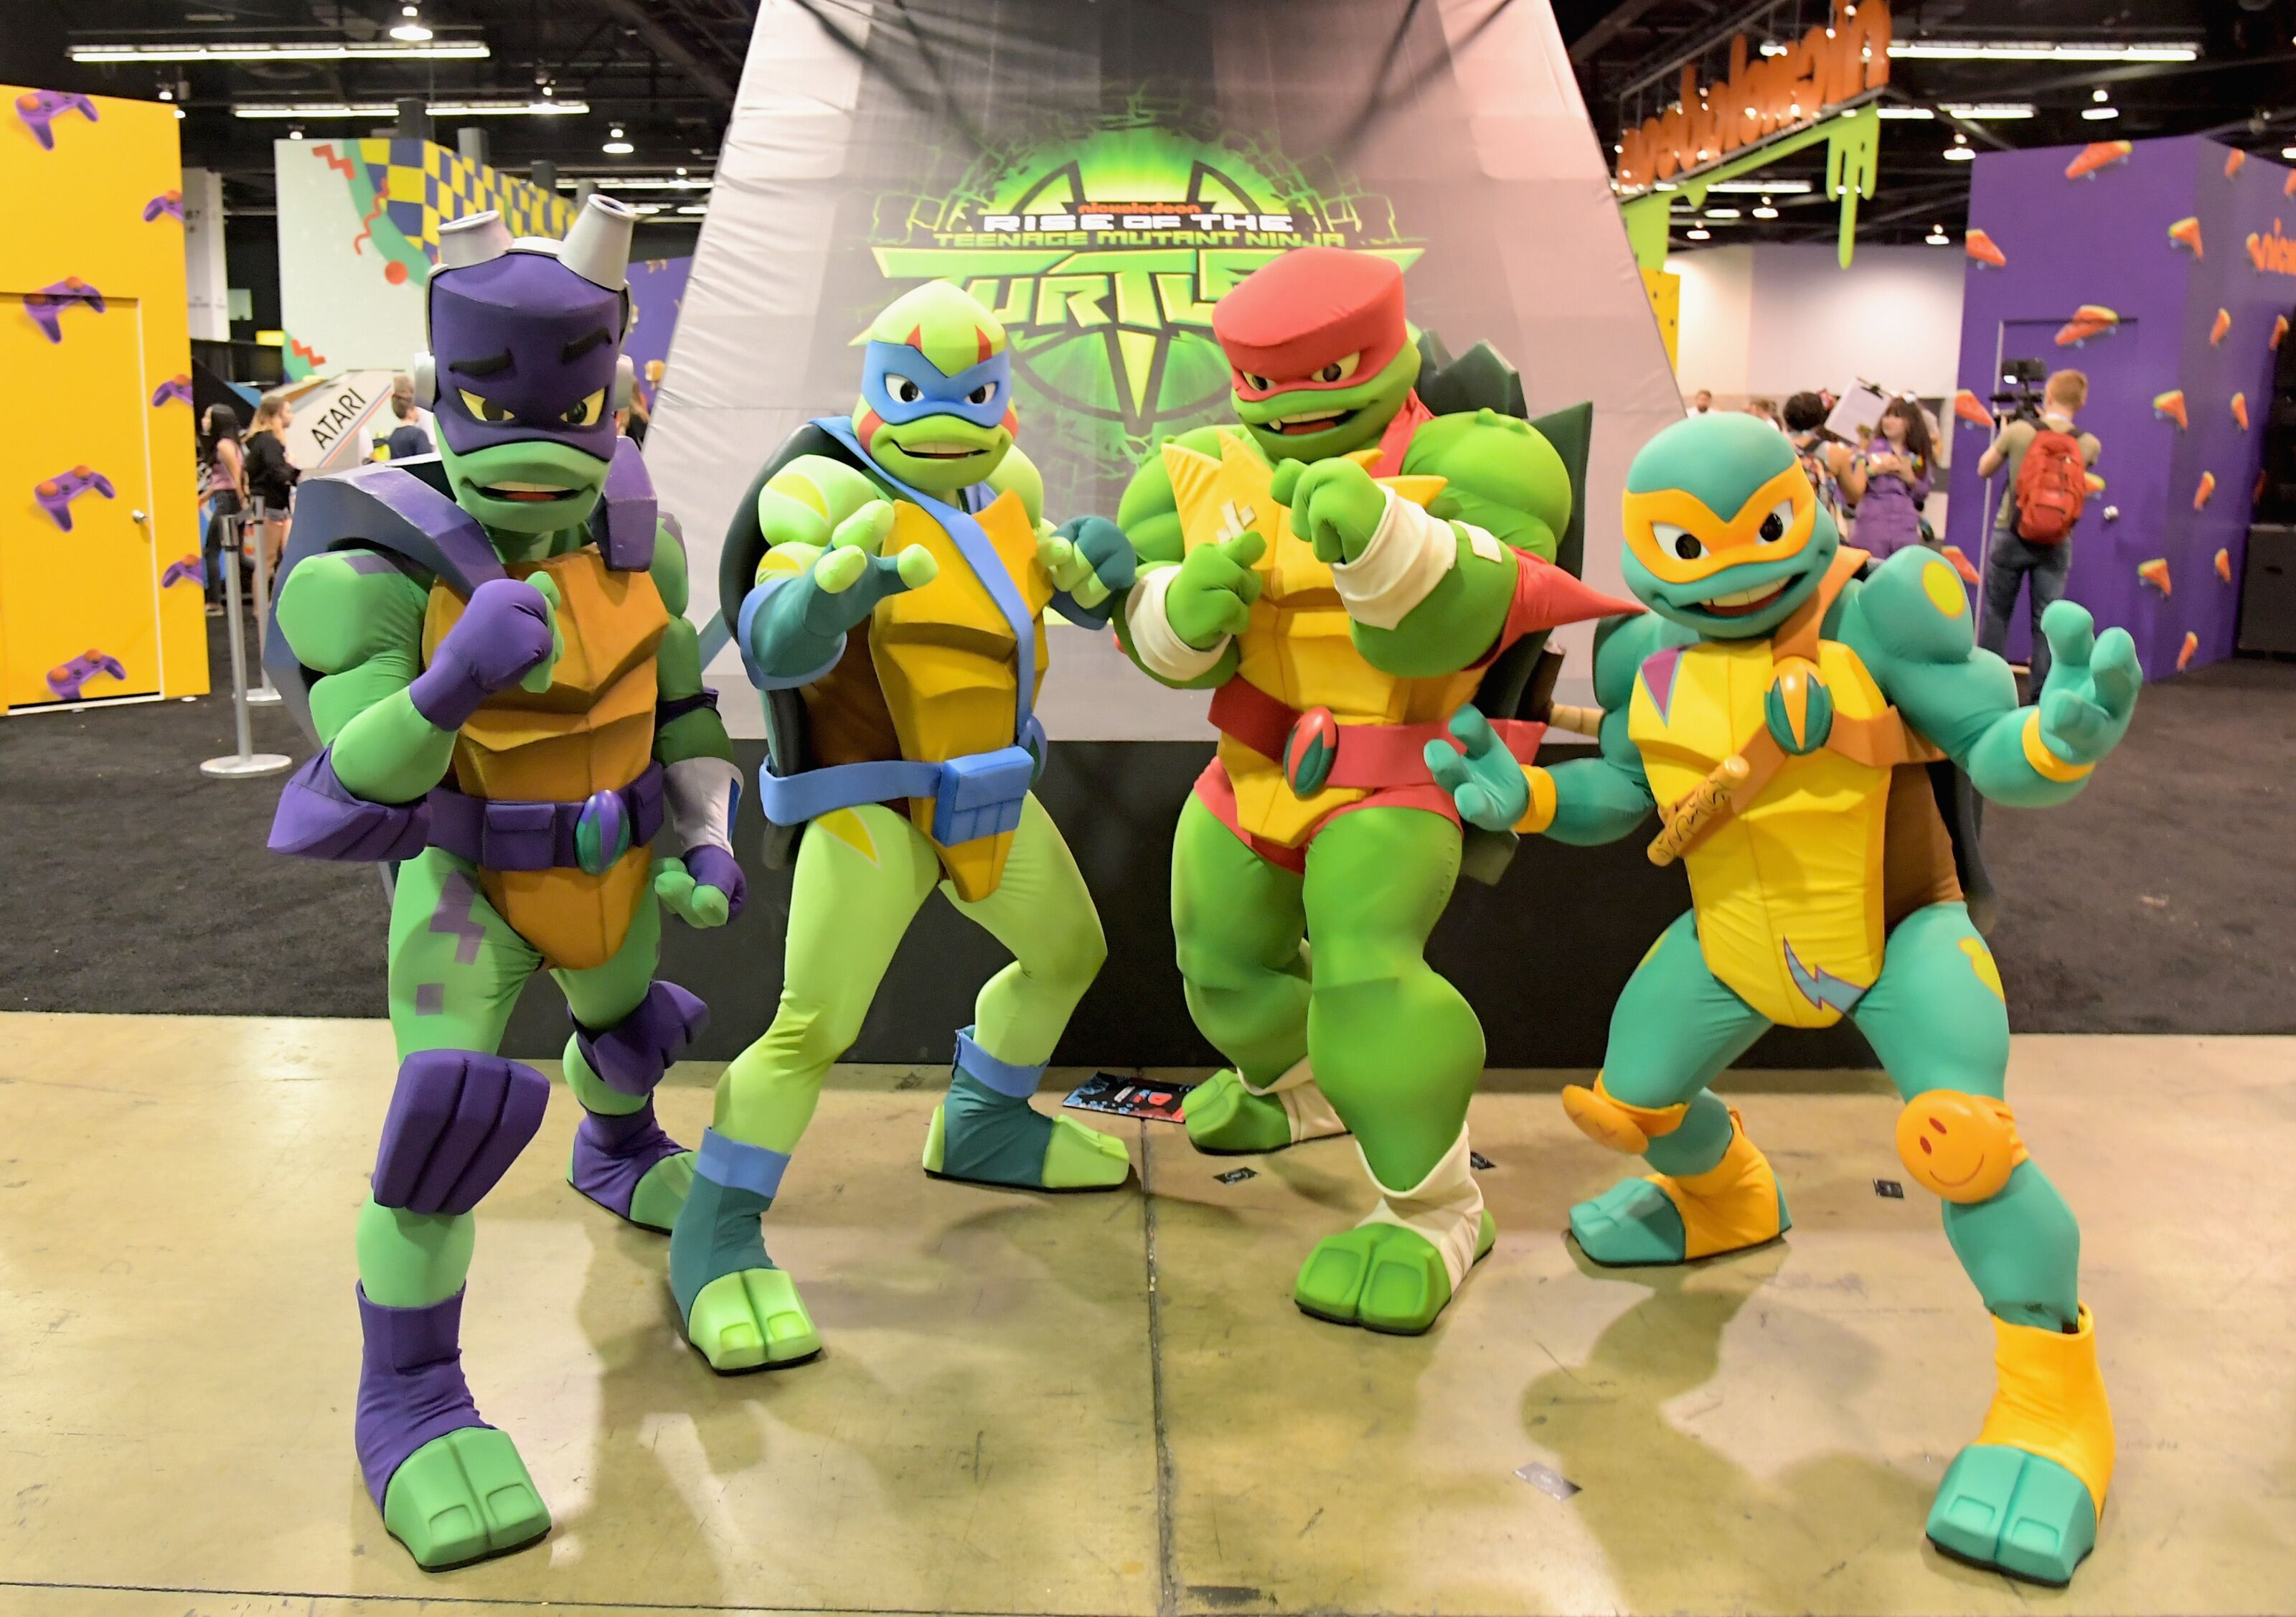 Rise Of The Teenage Mutant Ninja Turtles Is Blasphemy